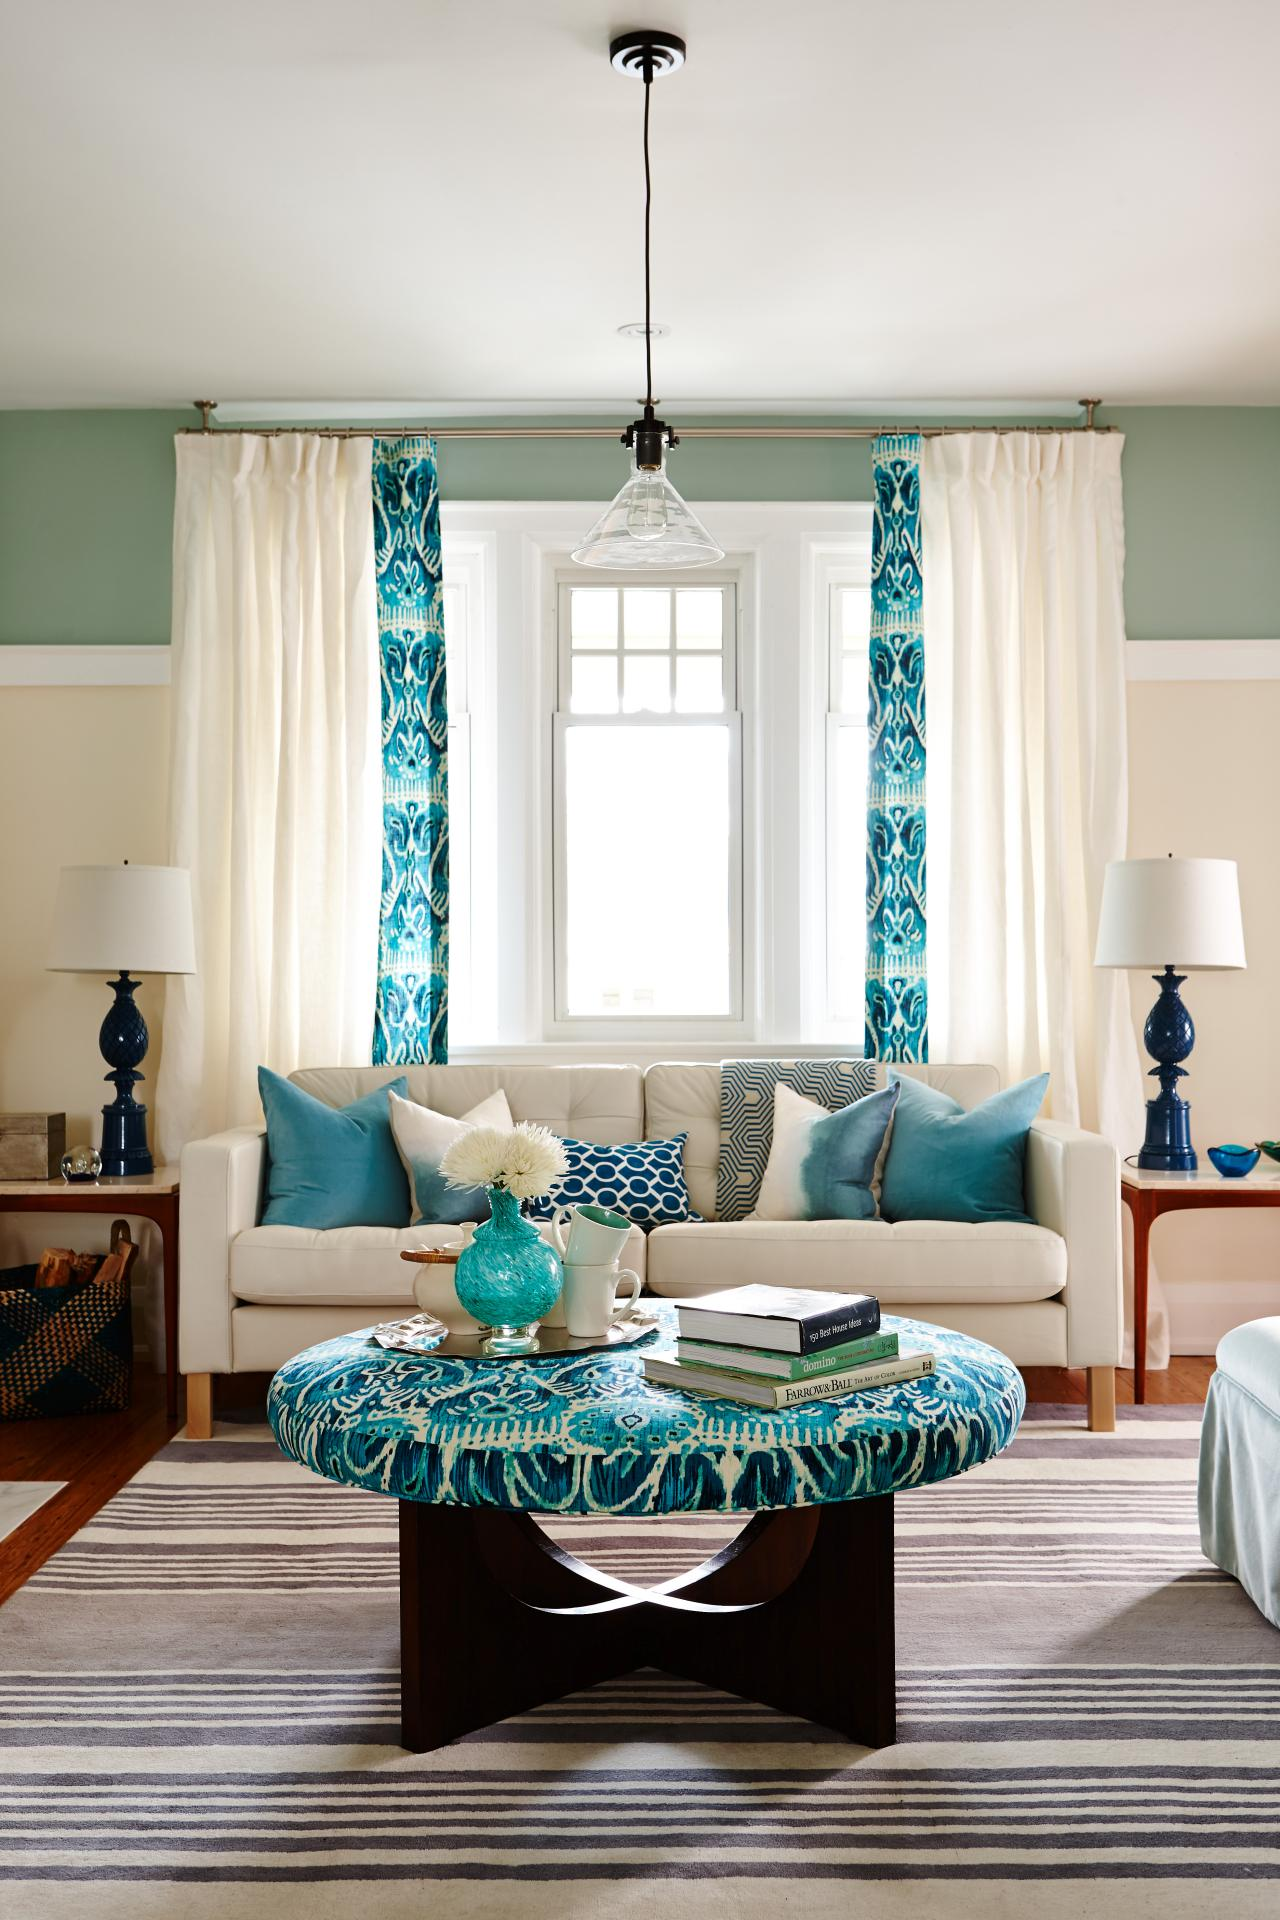 Affordable How To Decorate Your Living Room Turquoise Accents Living Room Turquoise Accents Living Room How To Decorate Ideas Turquoise Accents interior Colorful Living Room Interior Design